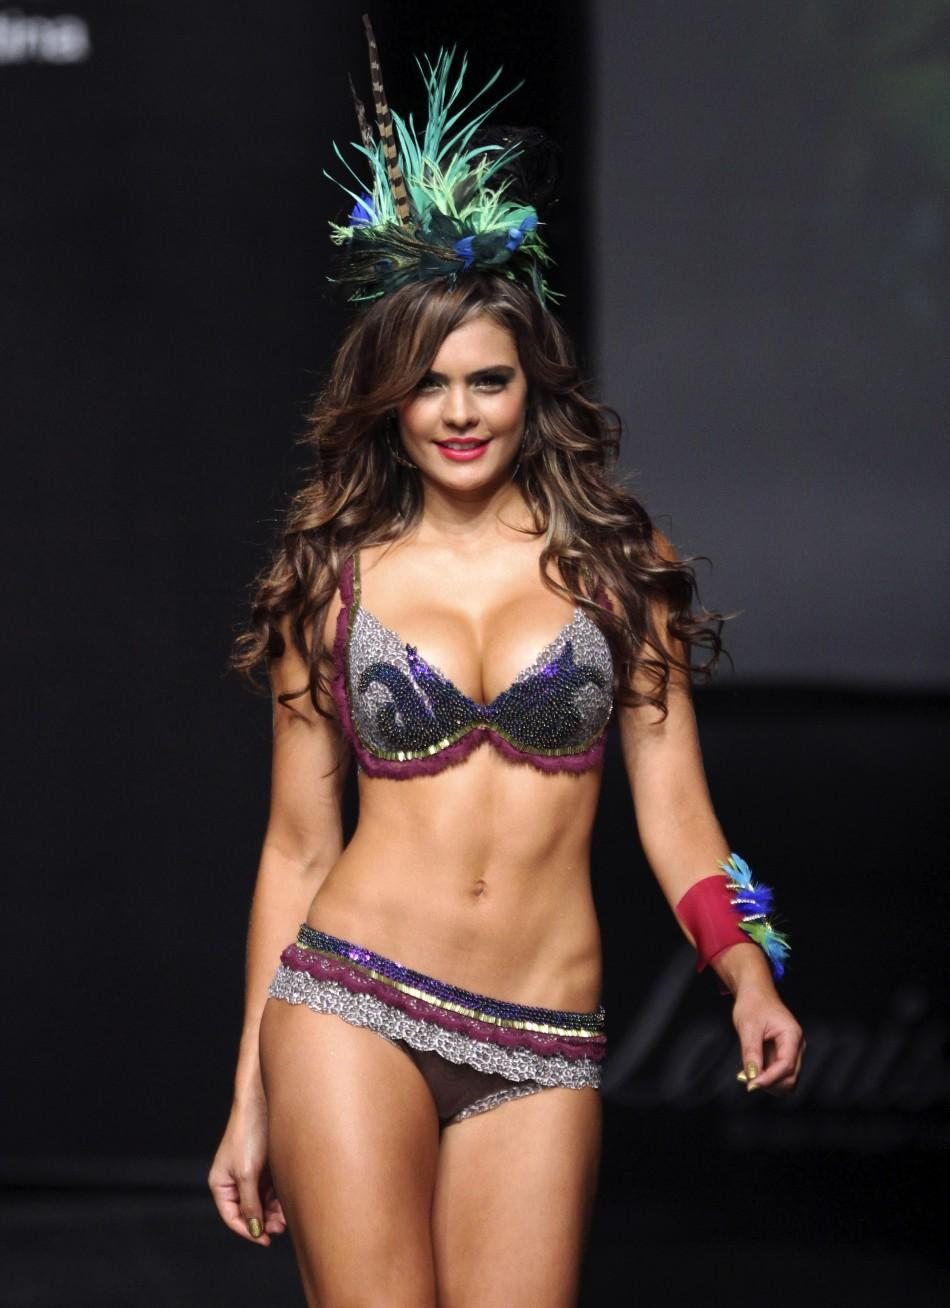 Ford Model B >> Sizzling Images of Models at Columbian Lingerie Fashion ...